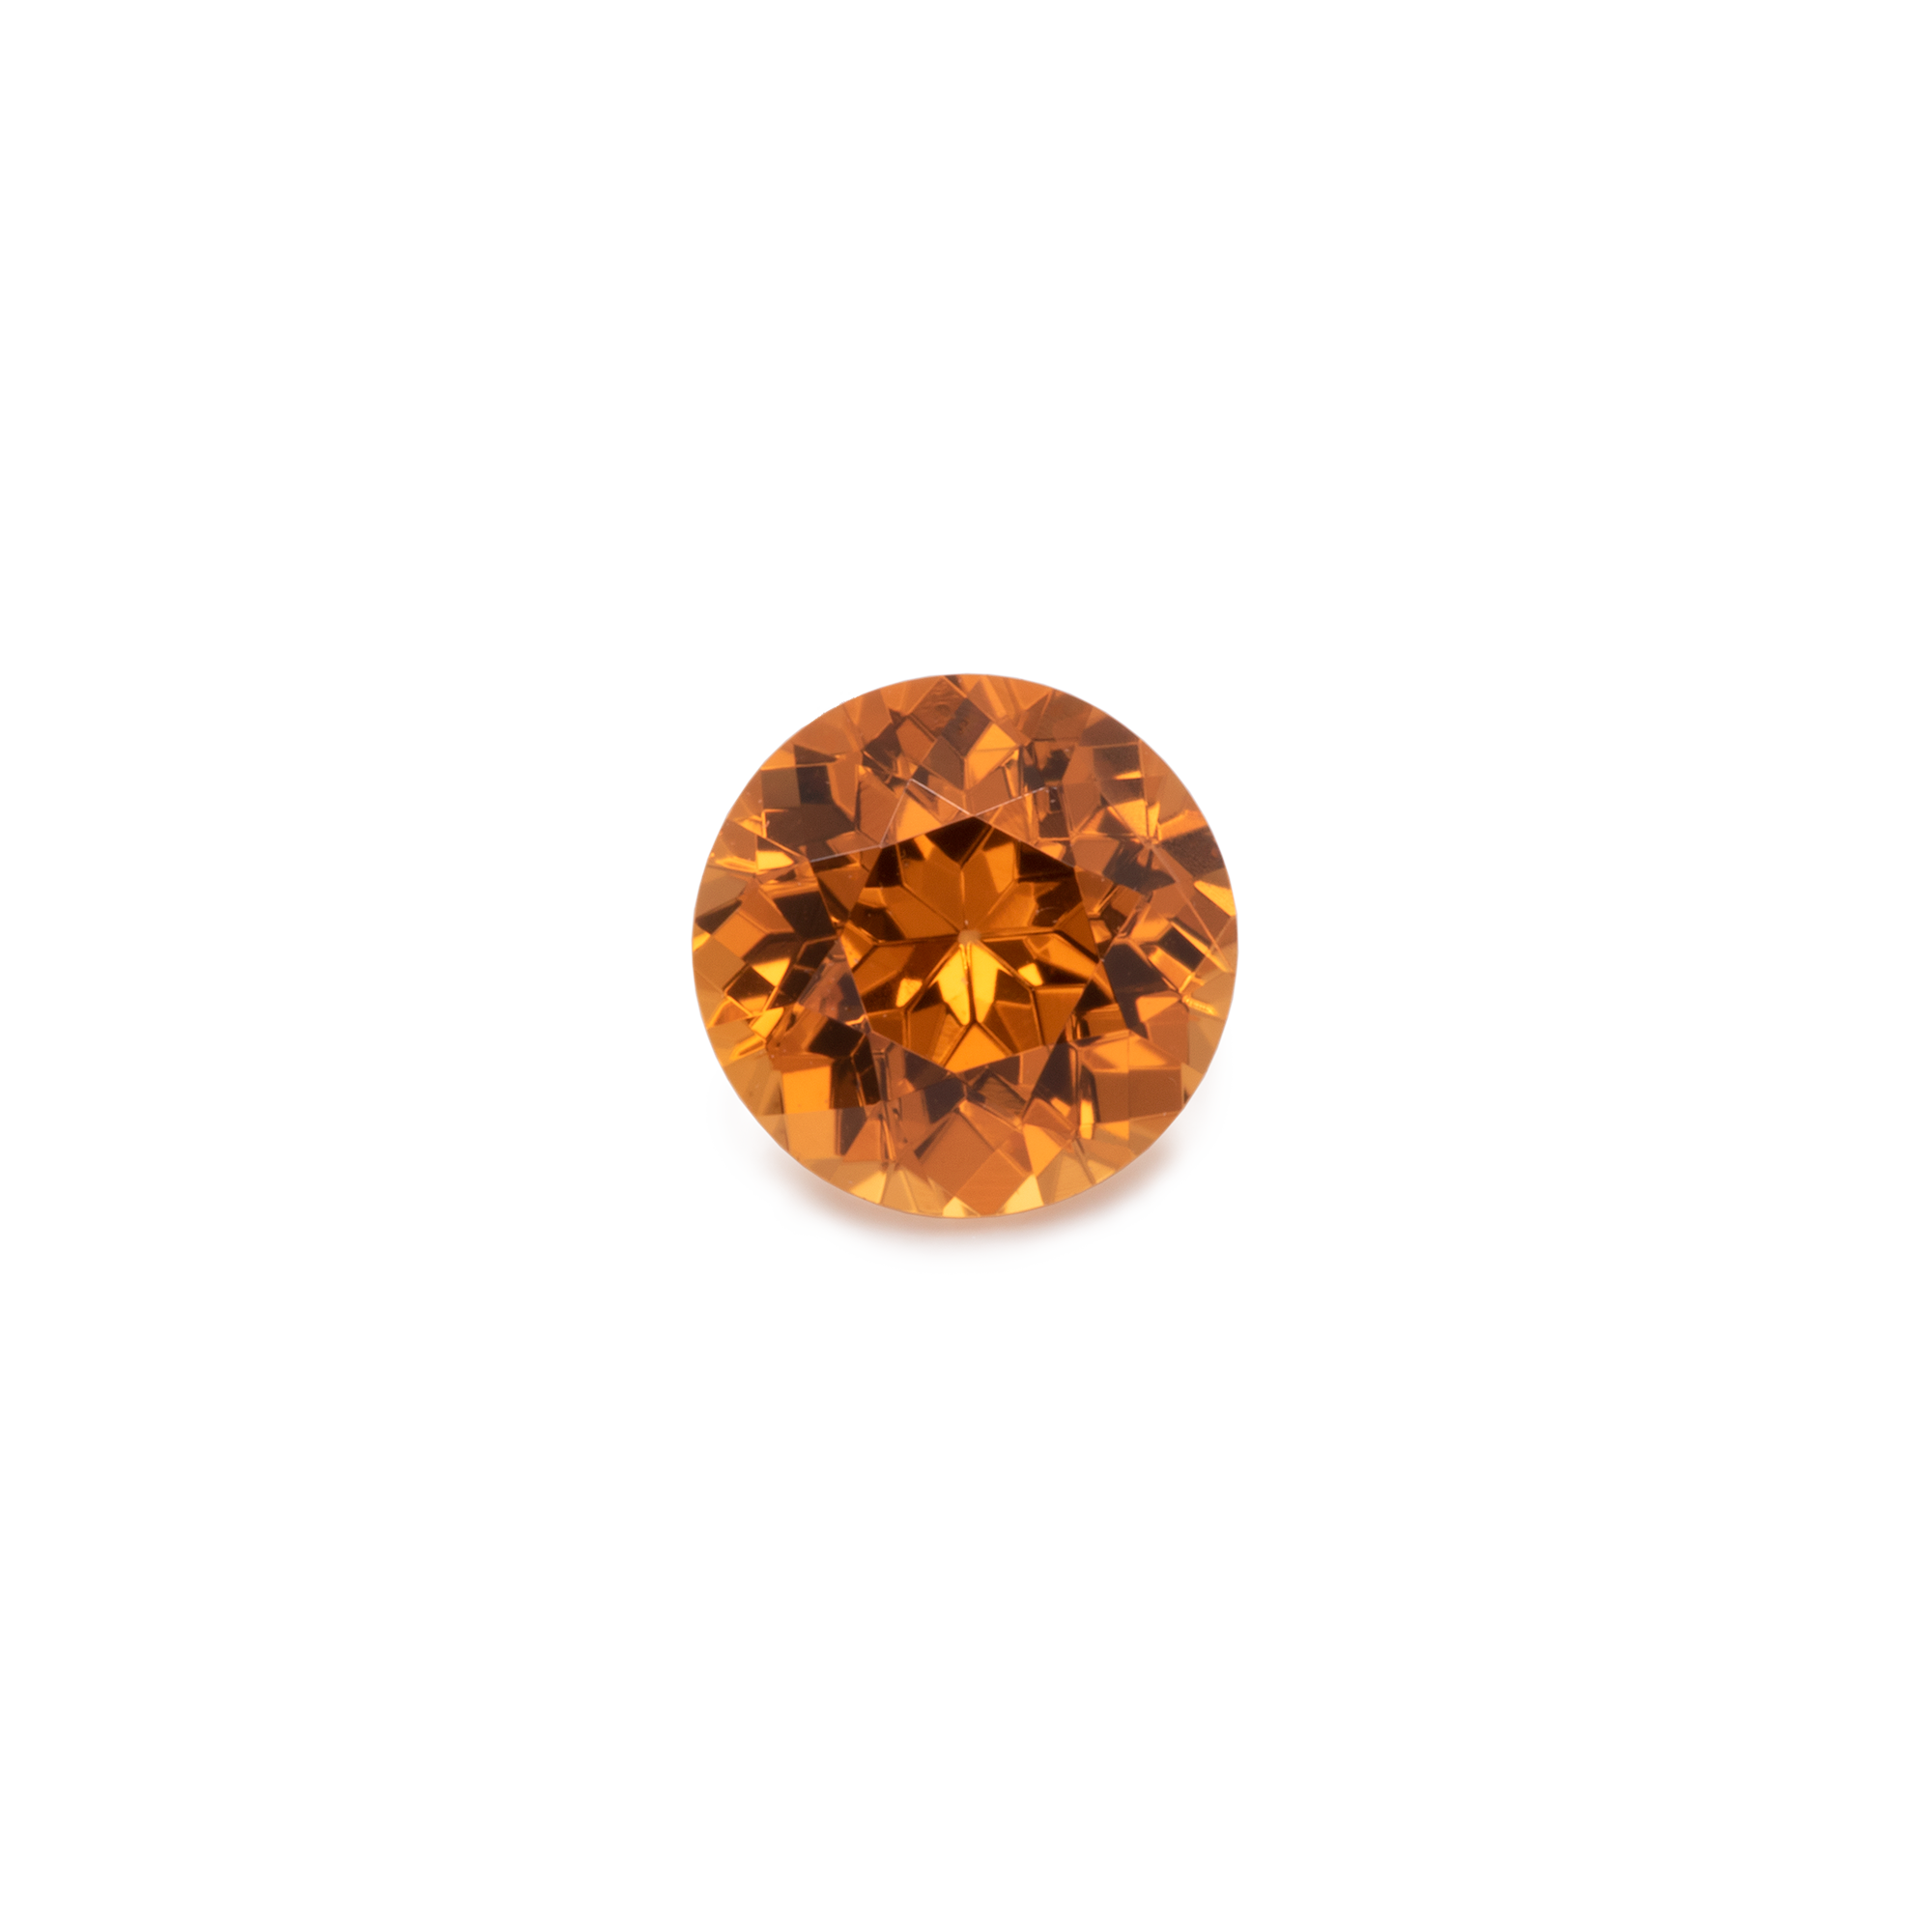 Mandarin Granat - orange, rund, 4x4 mm, 0,3-0,37 cts, Nr. MG70002